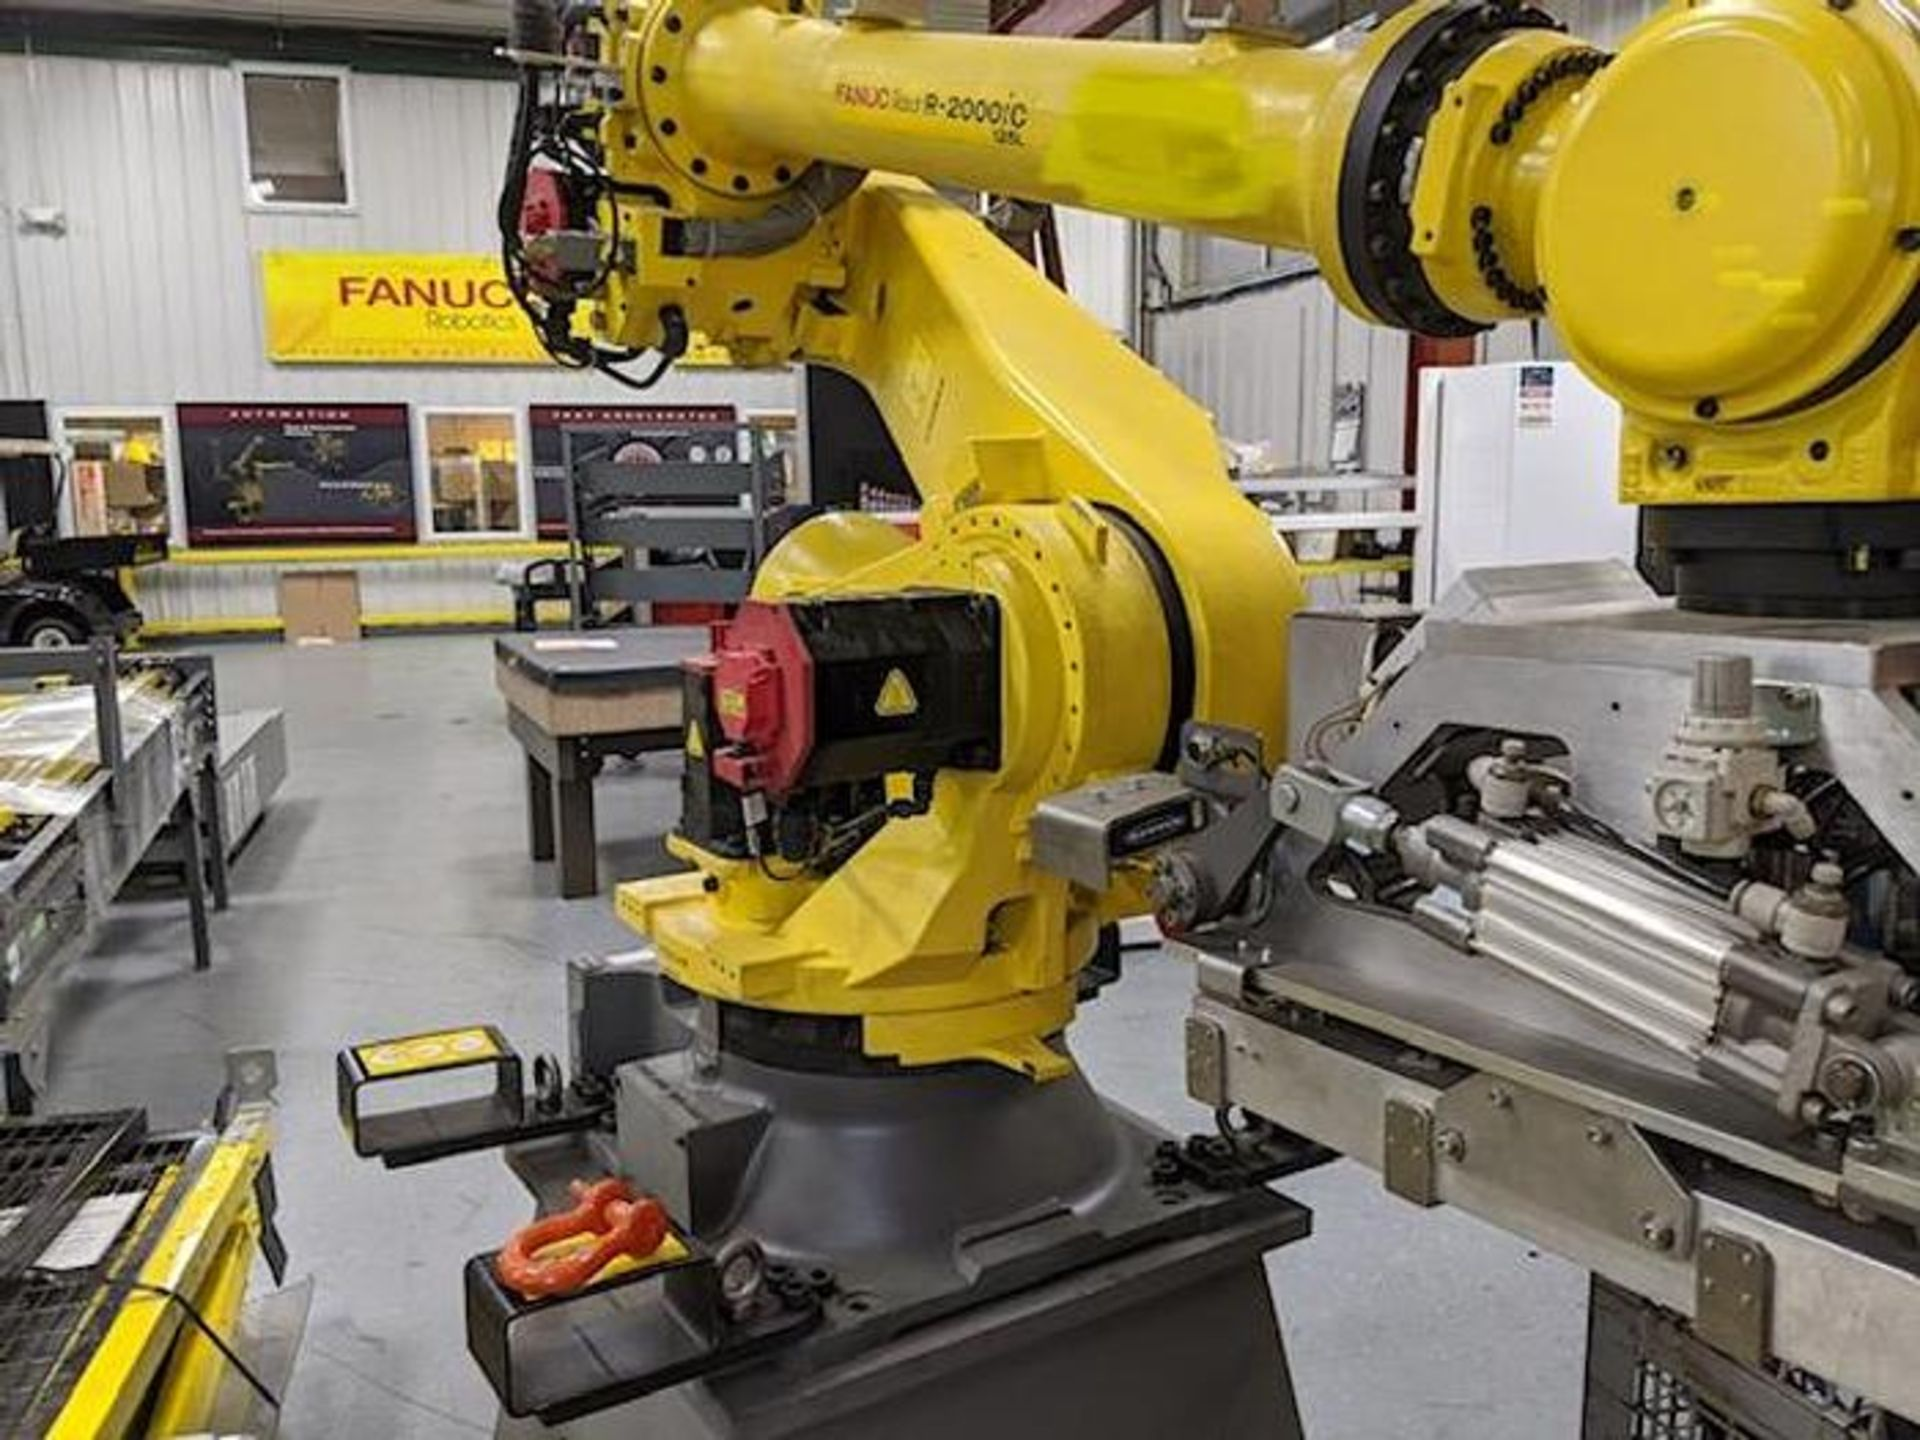 FANUC R2000iC/125L 6 AXIS CNC ROBOT WITH R30iB CONTROLLER, IR VISION, CABLES & REACH - Image 2 of 17